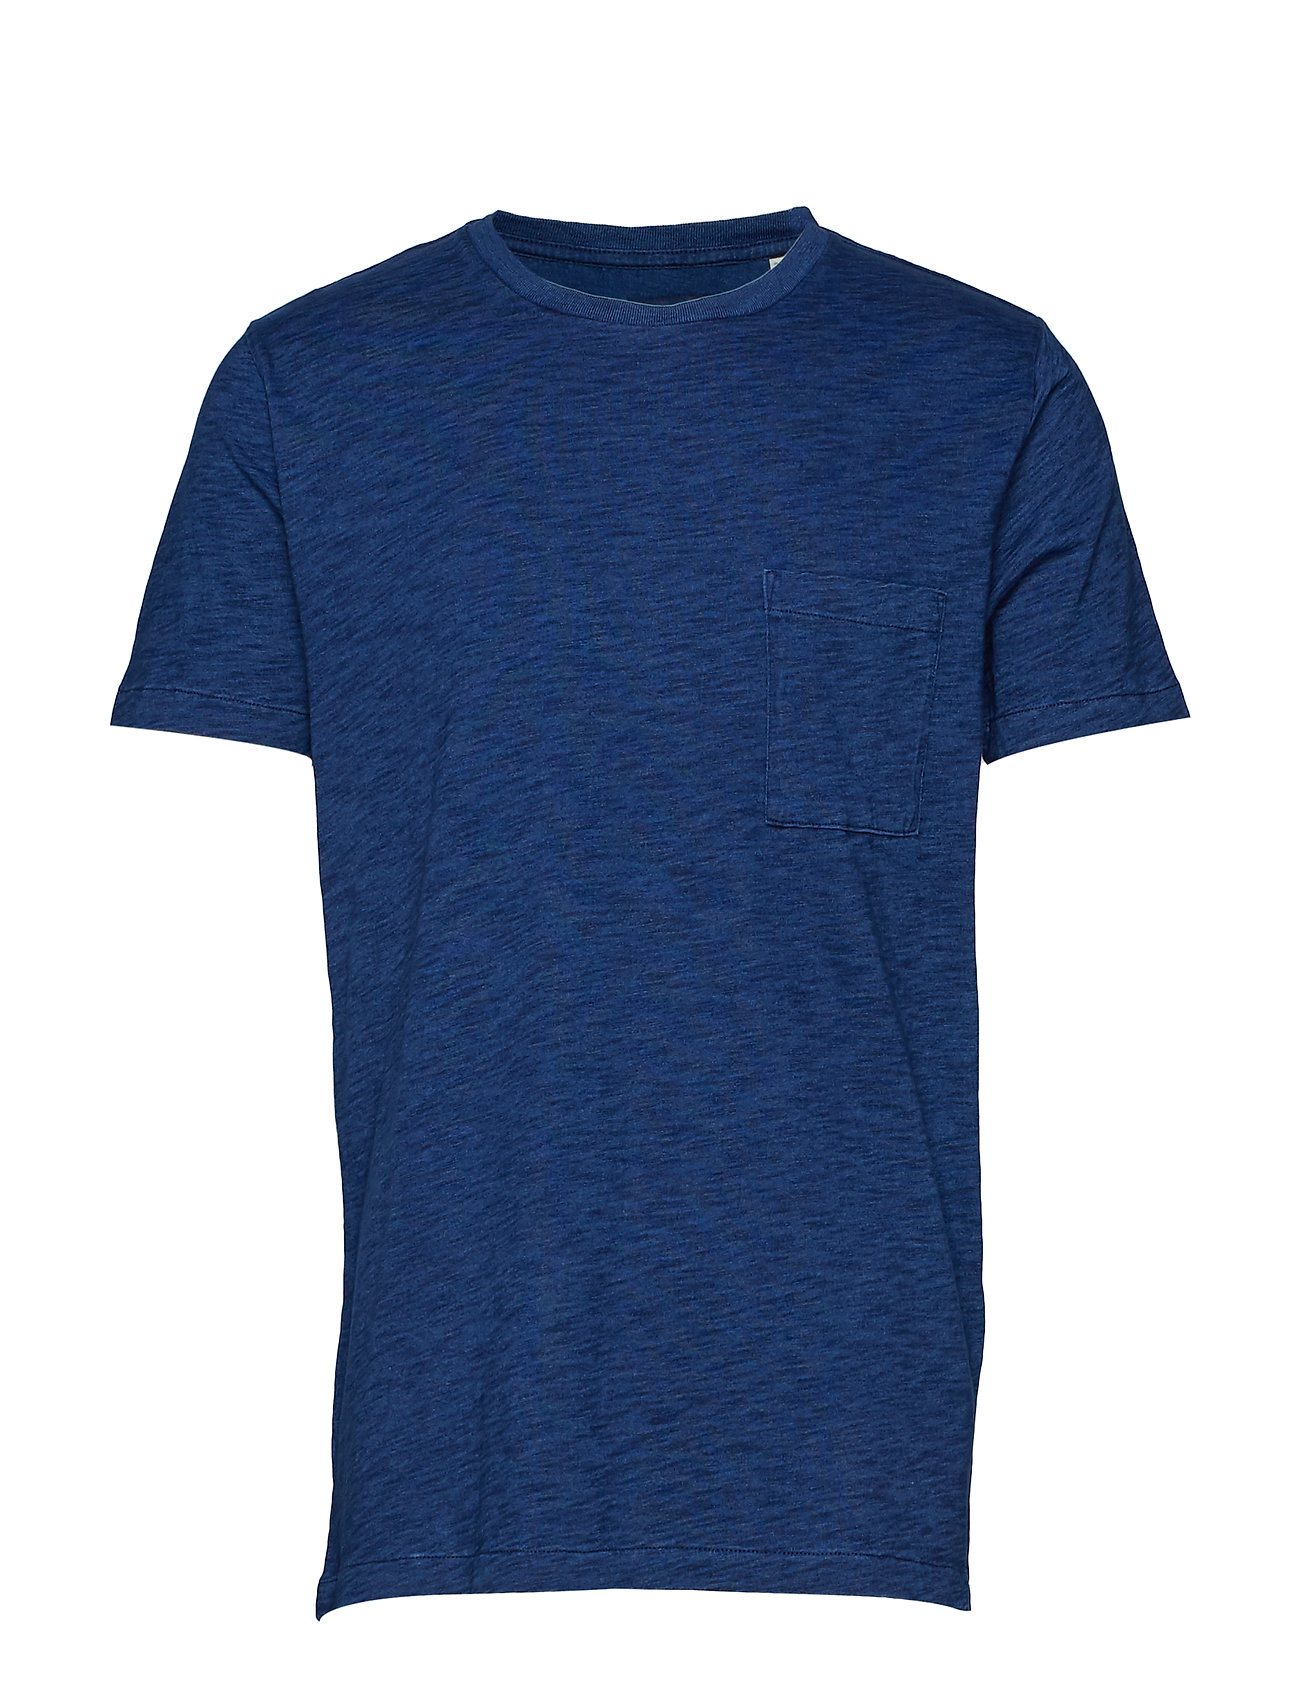 Levi's Made & Crafted LMC POCKET TEE WASHED BLUE IND - BLUES